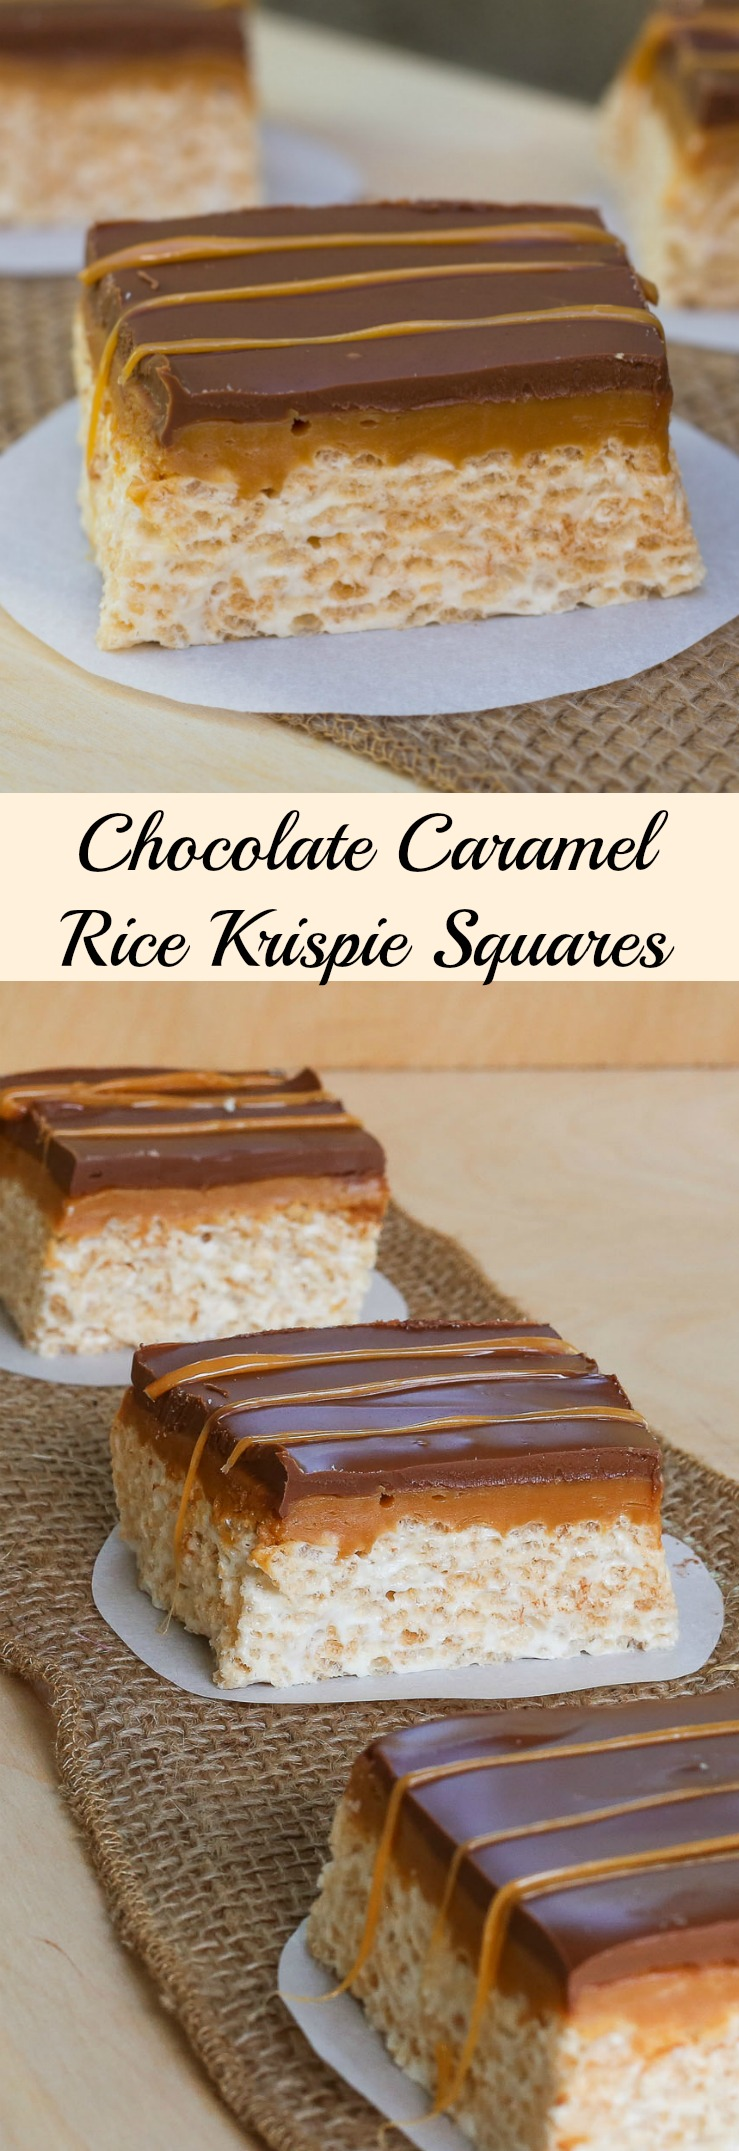 Chocolate Caramel Rice Krispie Squares